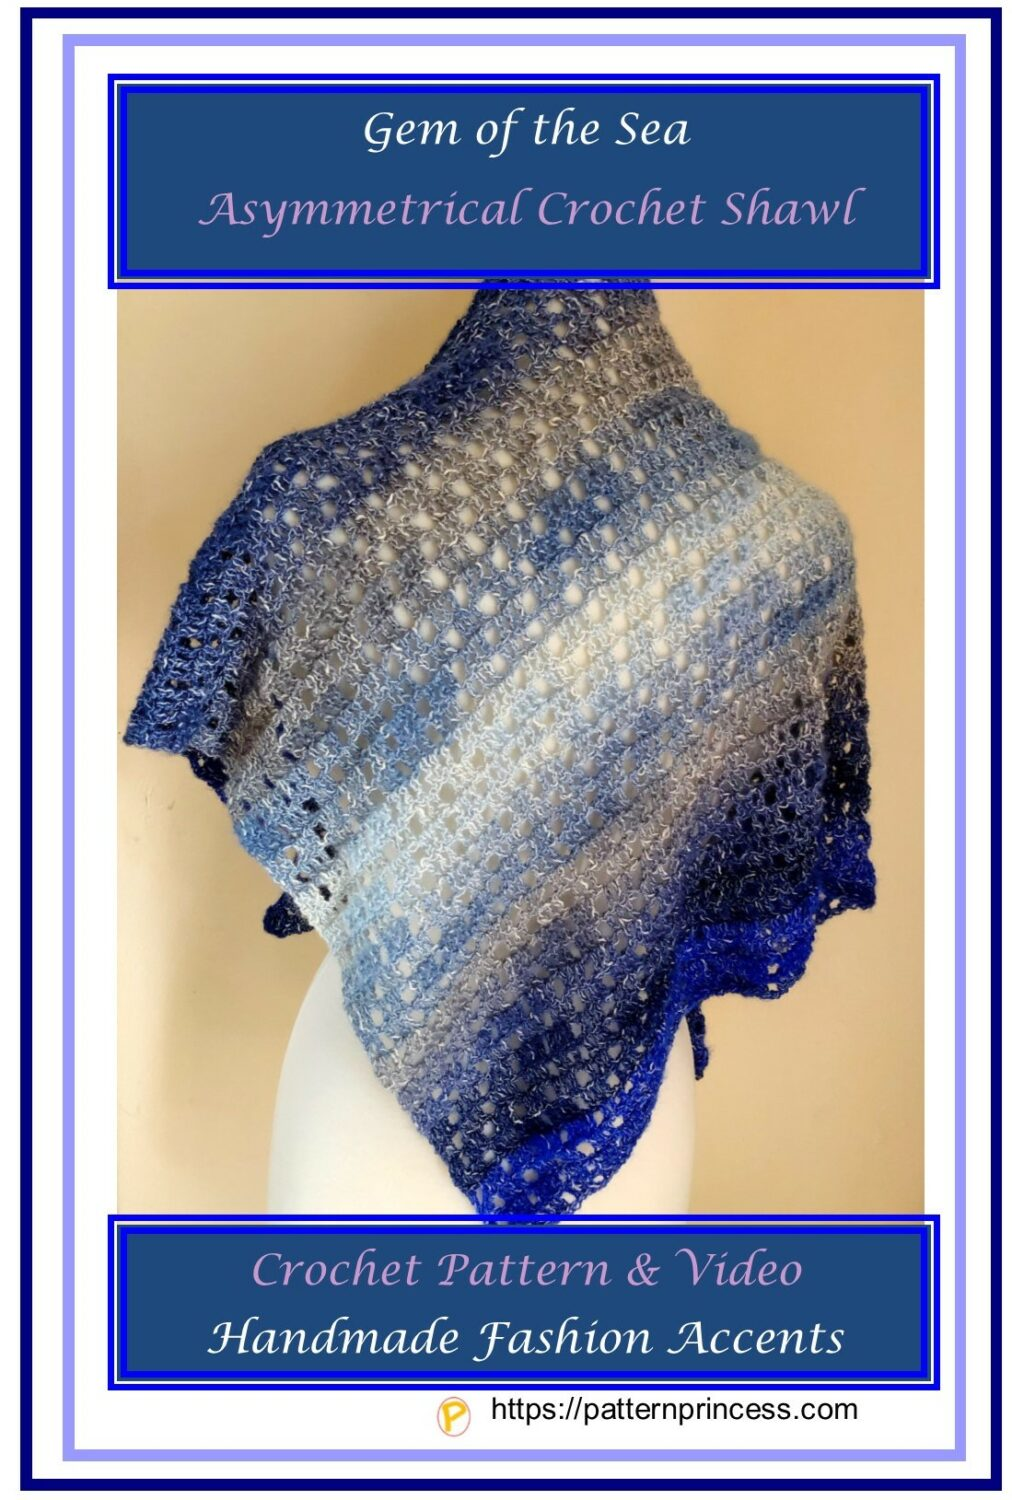 Gem of the Sea Asymmetrical Crochet Shawl 1